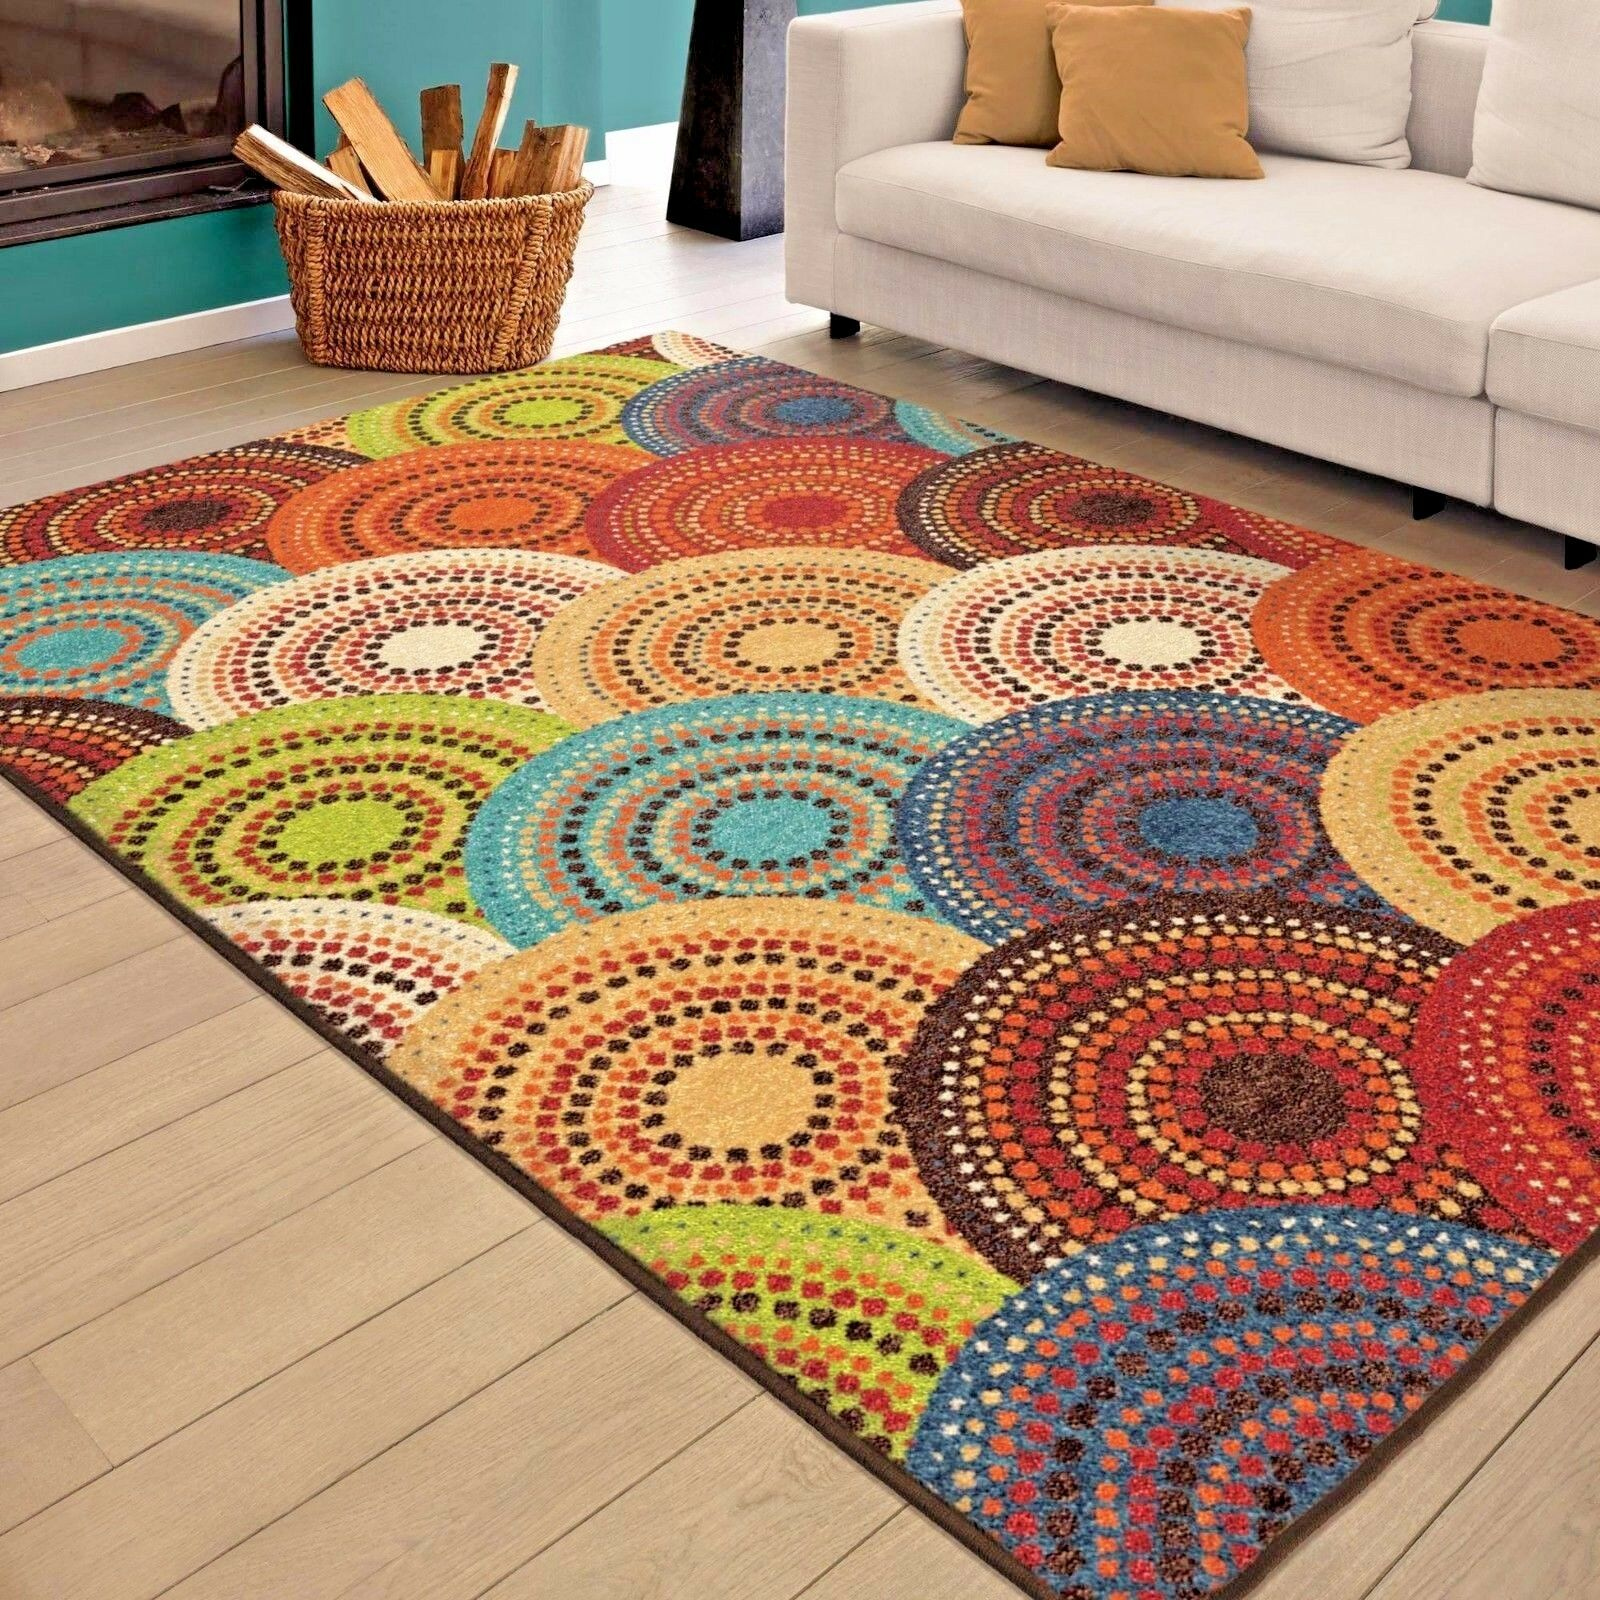 Rugs Area Rugs Carpet 8x10 Area Rug Floor Modern Colorful Large Big Cool Rugs Ebay